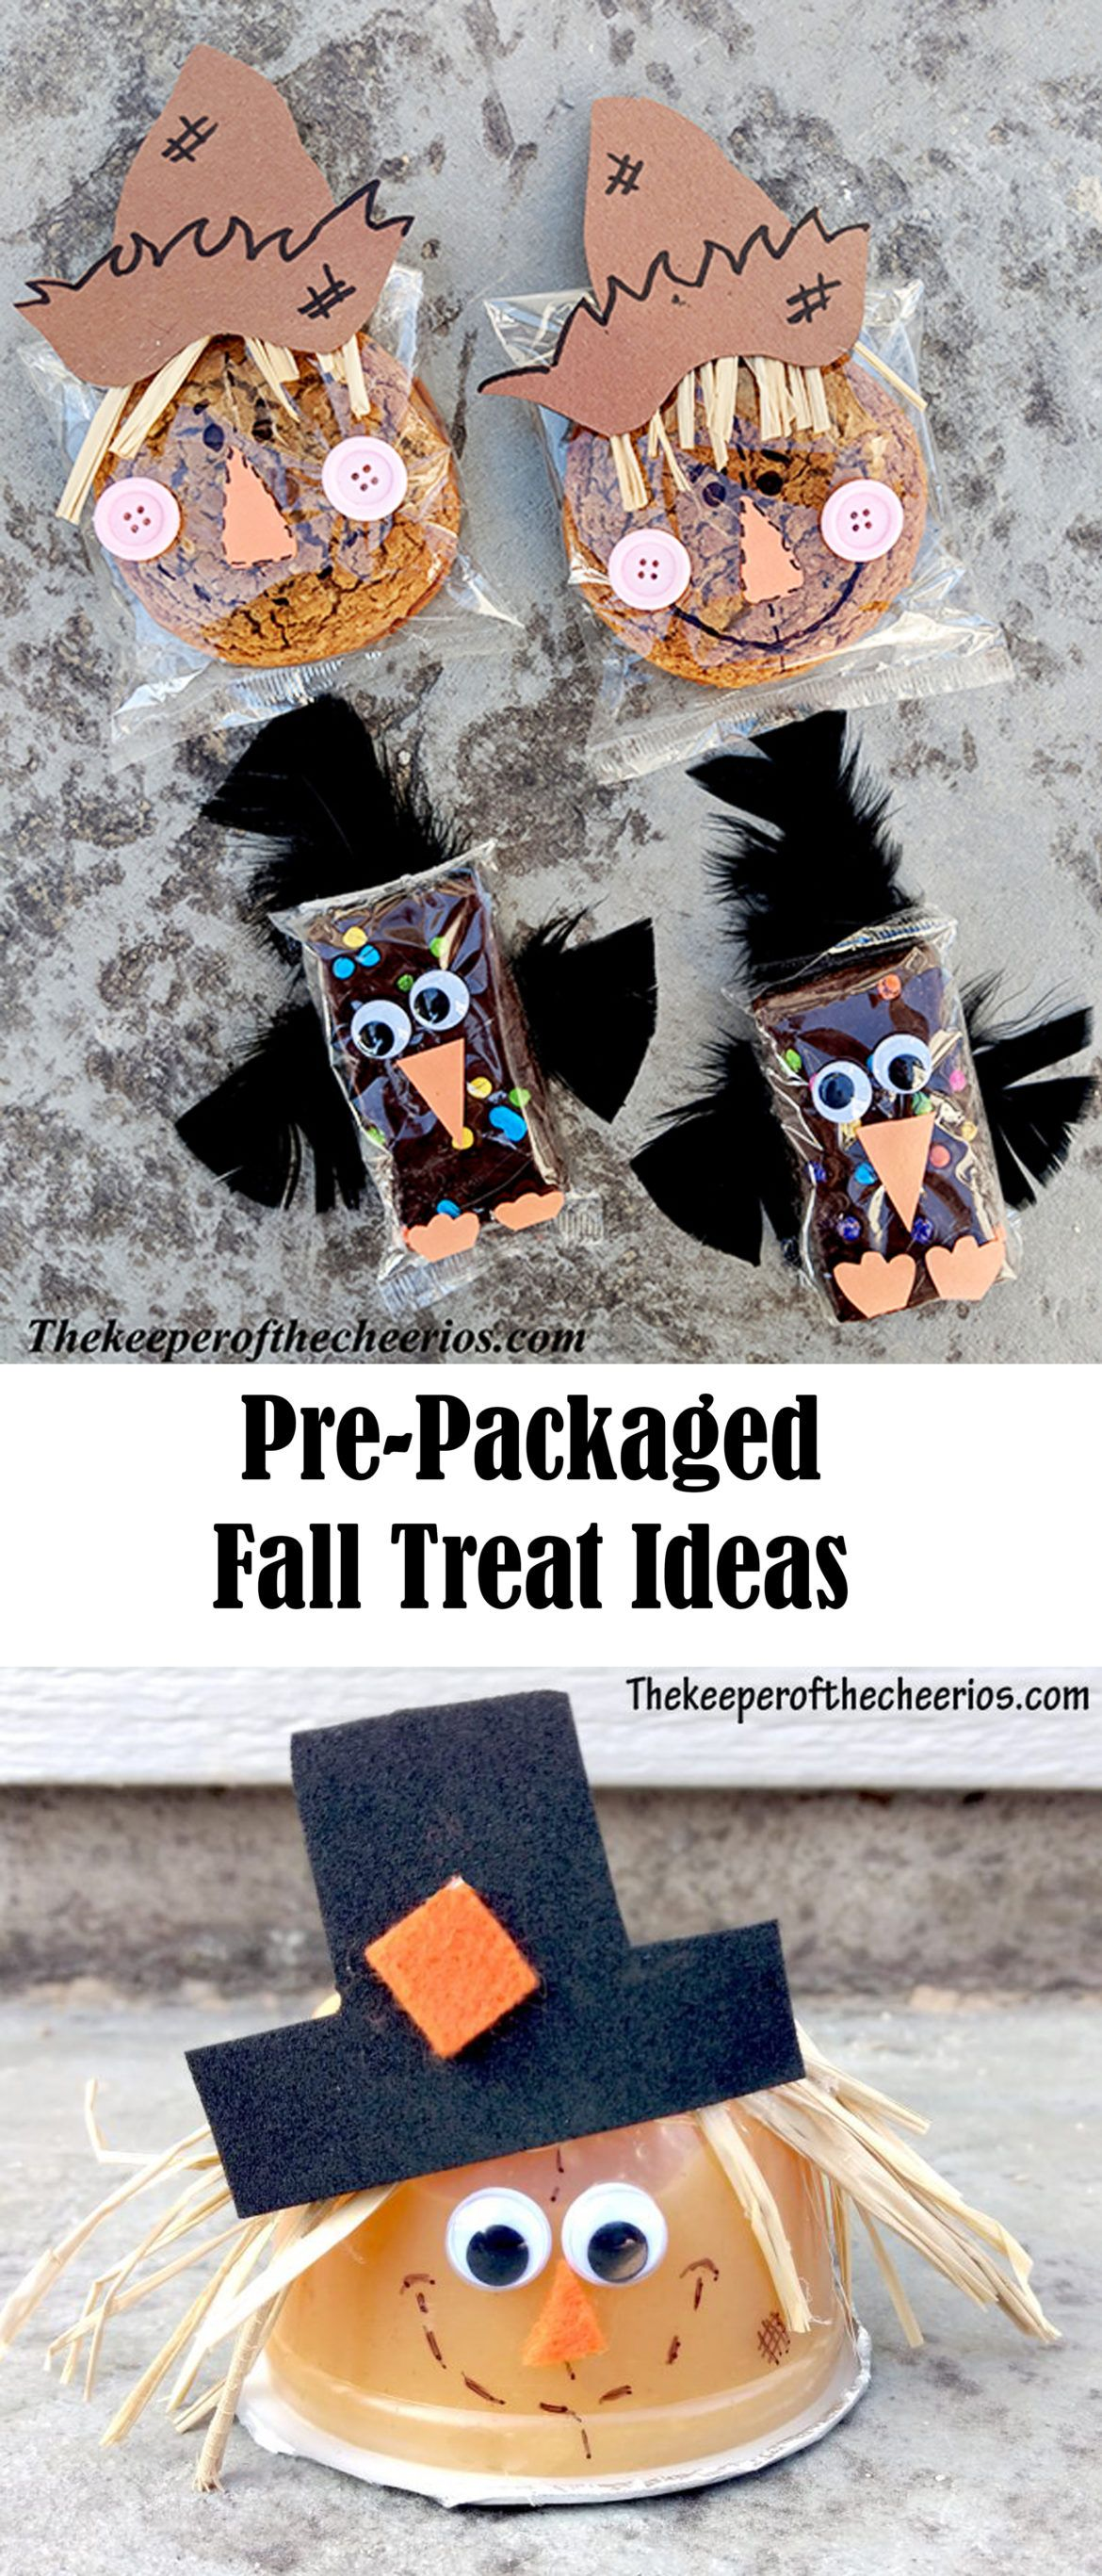 Pre-Packaged Fall Treat Ideas - The Keeper of the Cheerios #halloweentreatsforschool